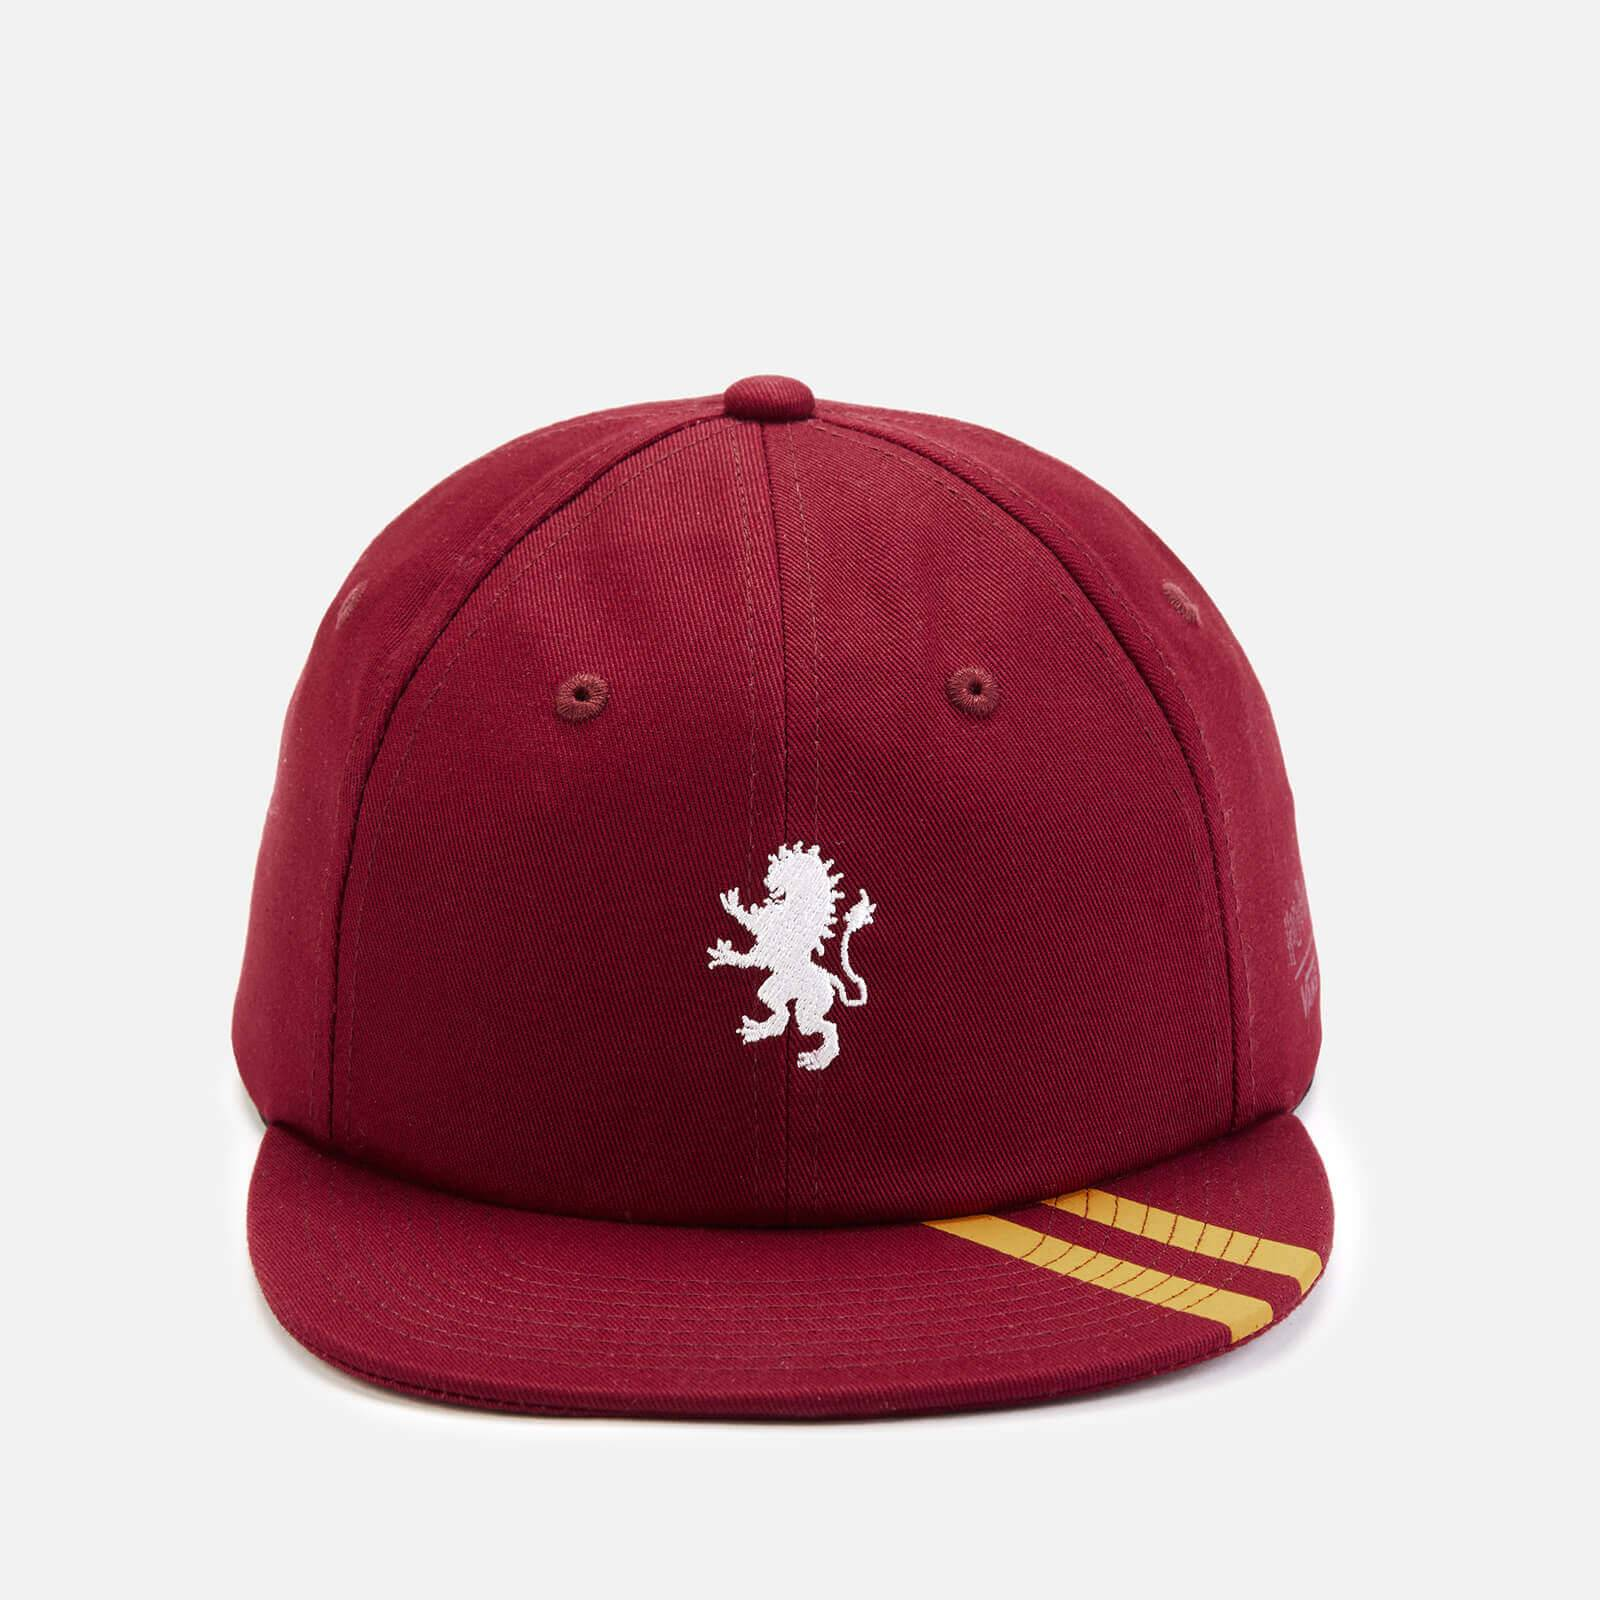 Vans X Harry Potter Gryffindor Vintage Unstructured Cap - Red